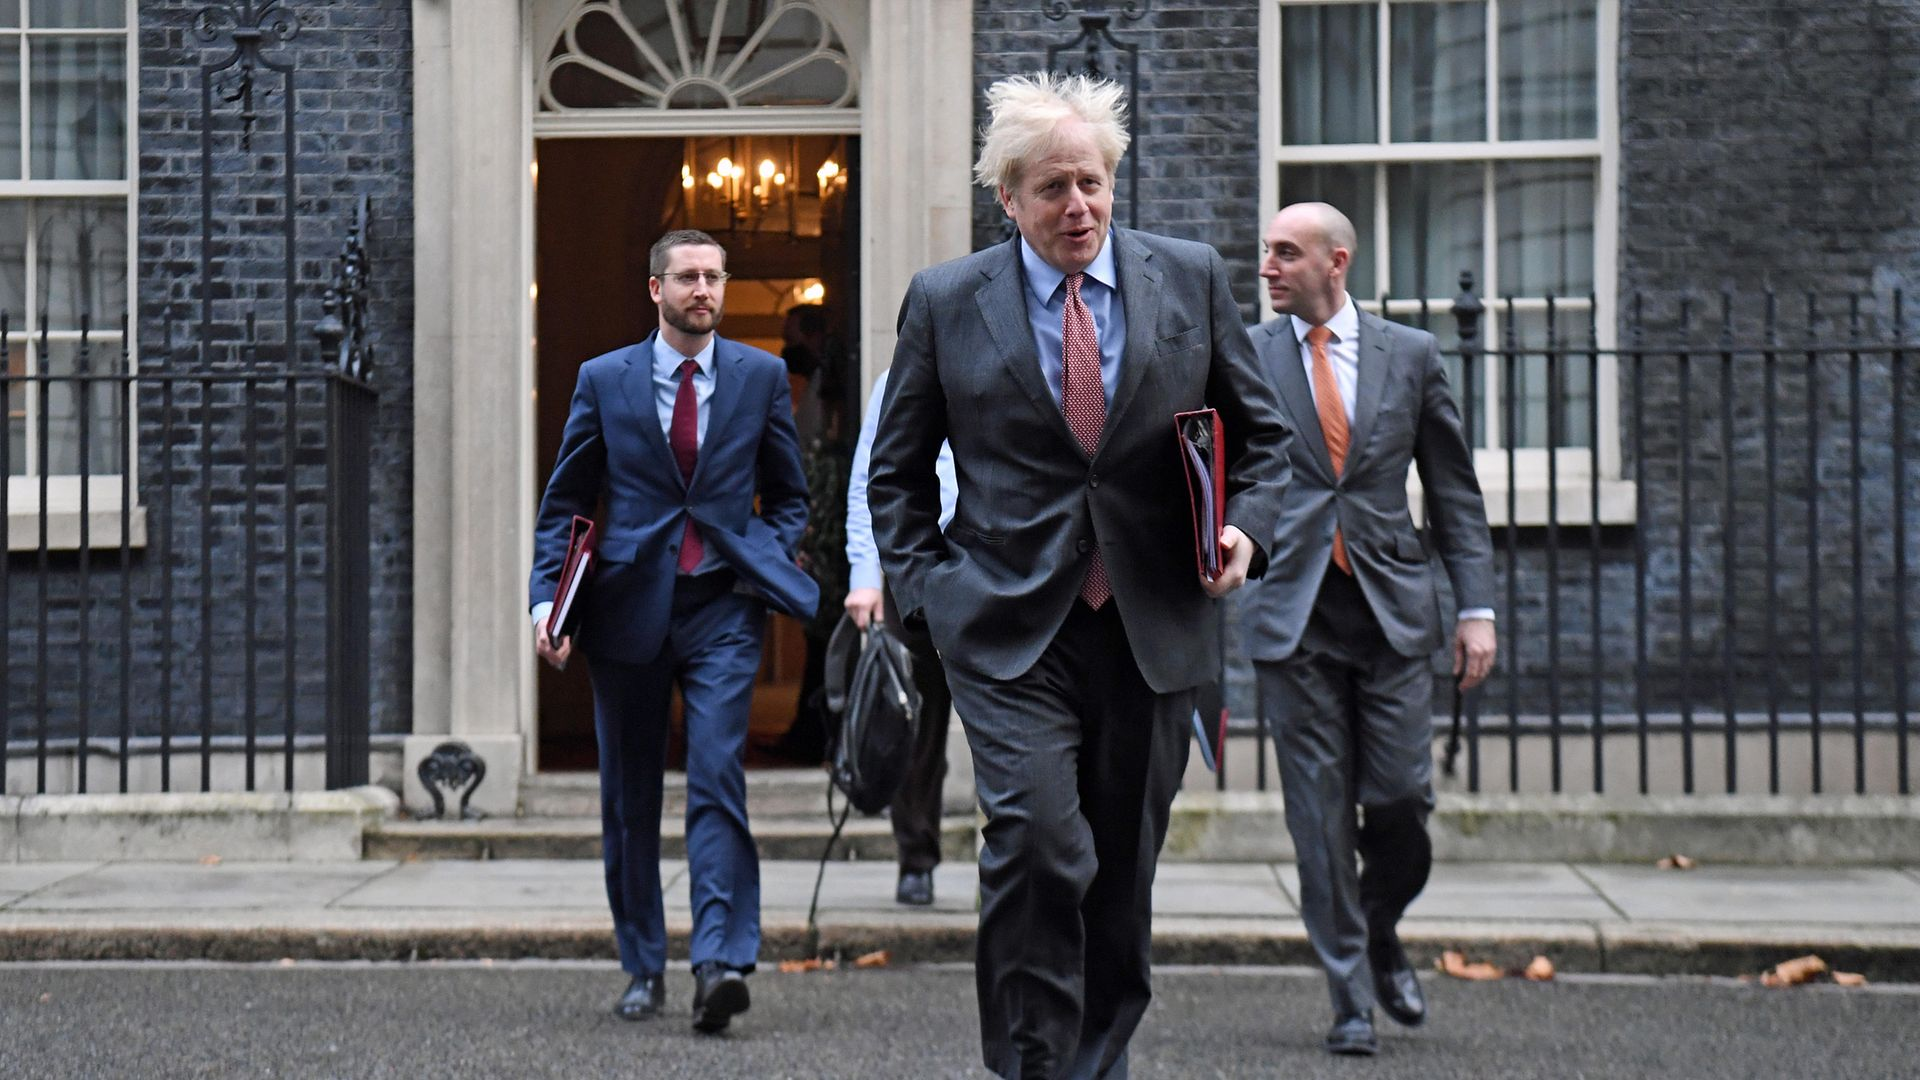 Prime Minister Boris Johnson leads colleagues including Cabinet Secretary Simon Case (left), across Downing Street as they arrive for the government's weekly Cabinet meeting at the Foreign and Commonwealth Office (FCO). - Credit: PA